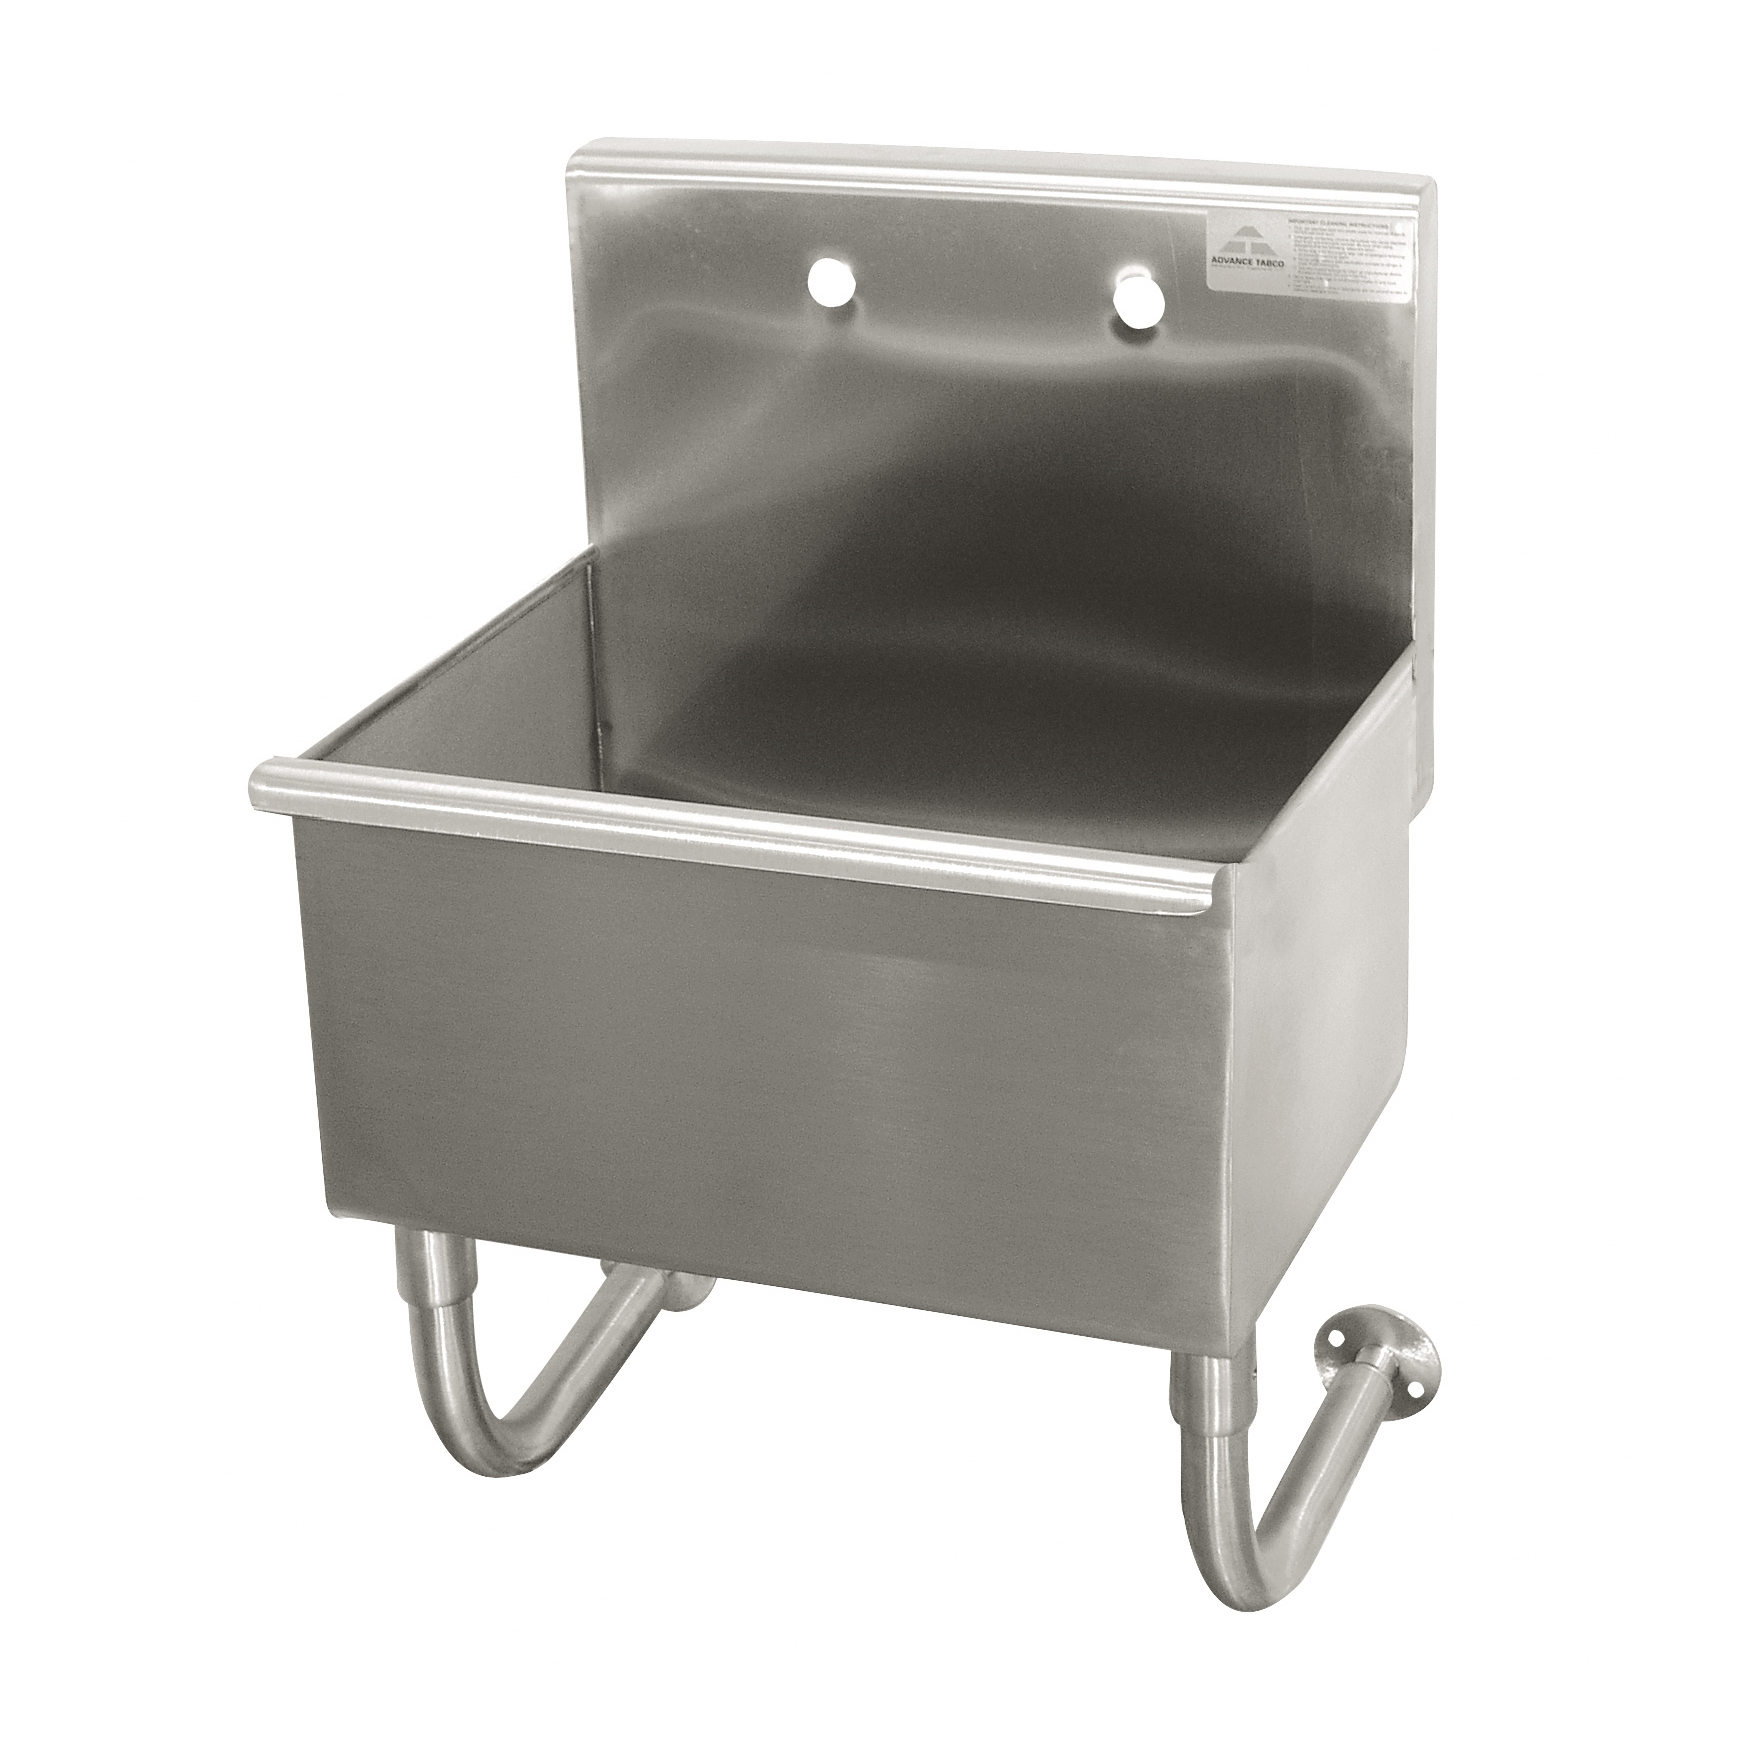 Advance Tabco WSS-14-21 sink, hand